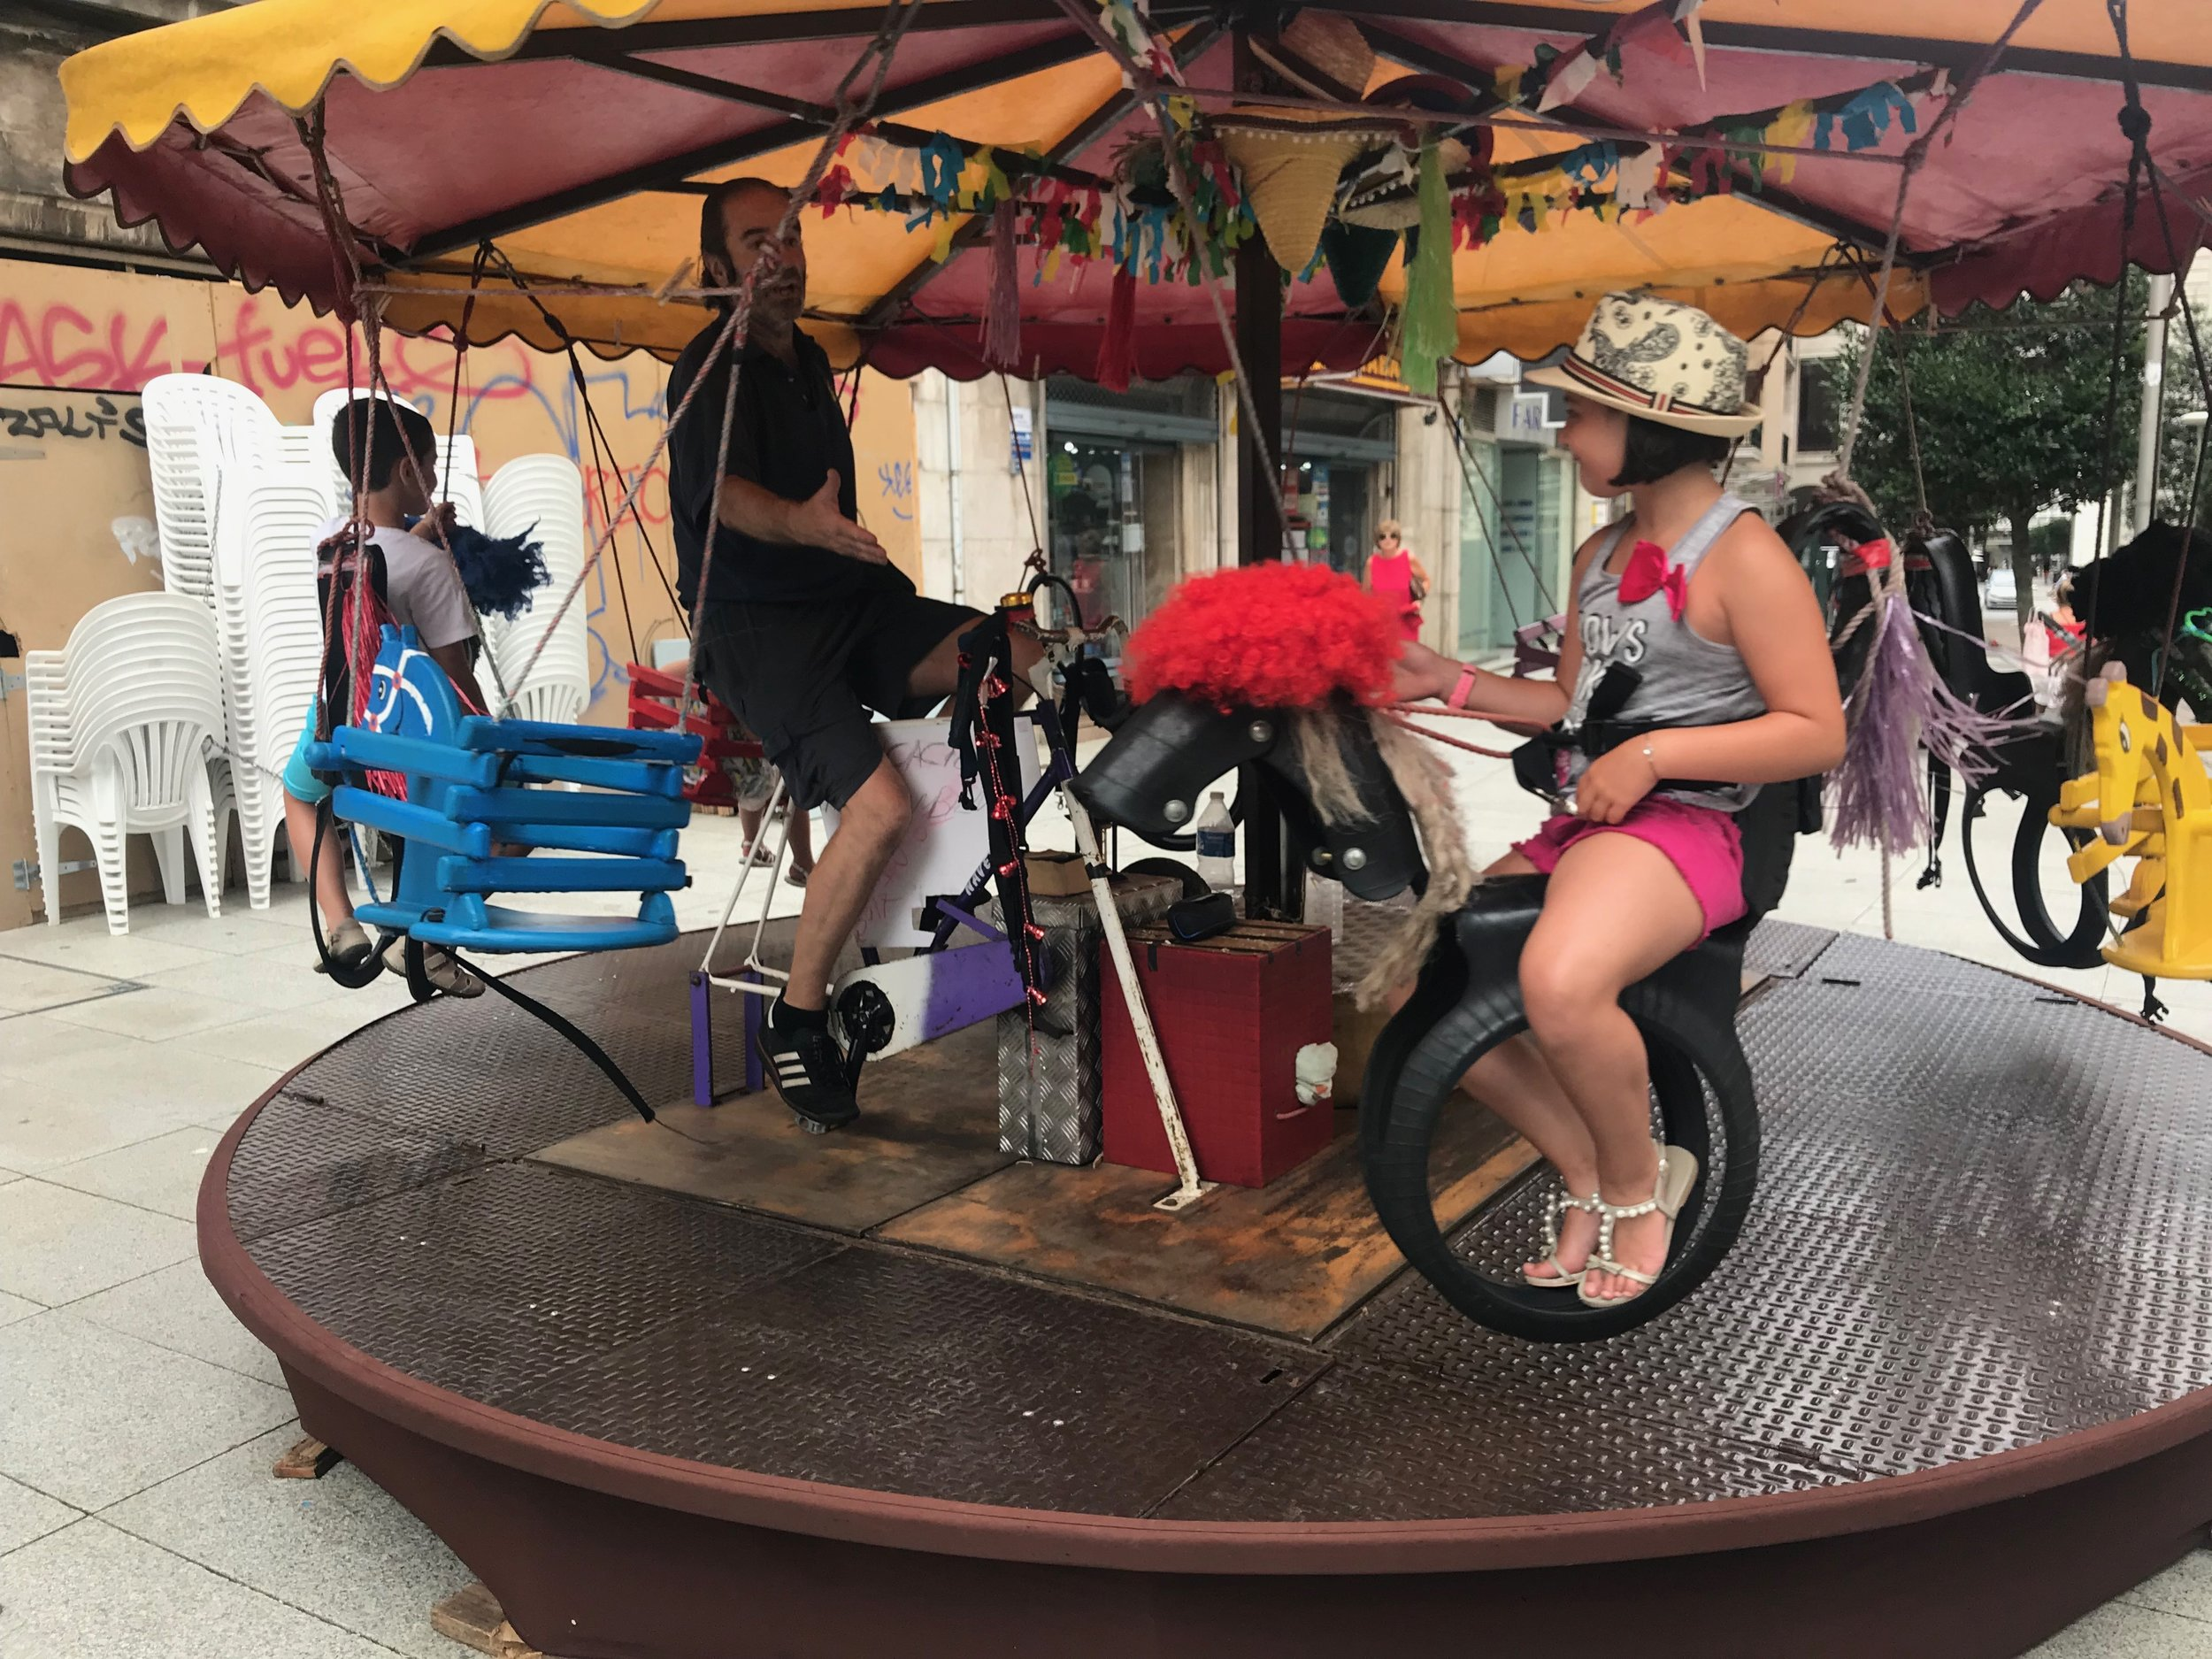 This man self-powered the merry-go-round with his bicycle ability